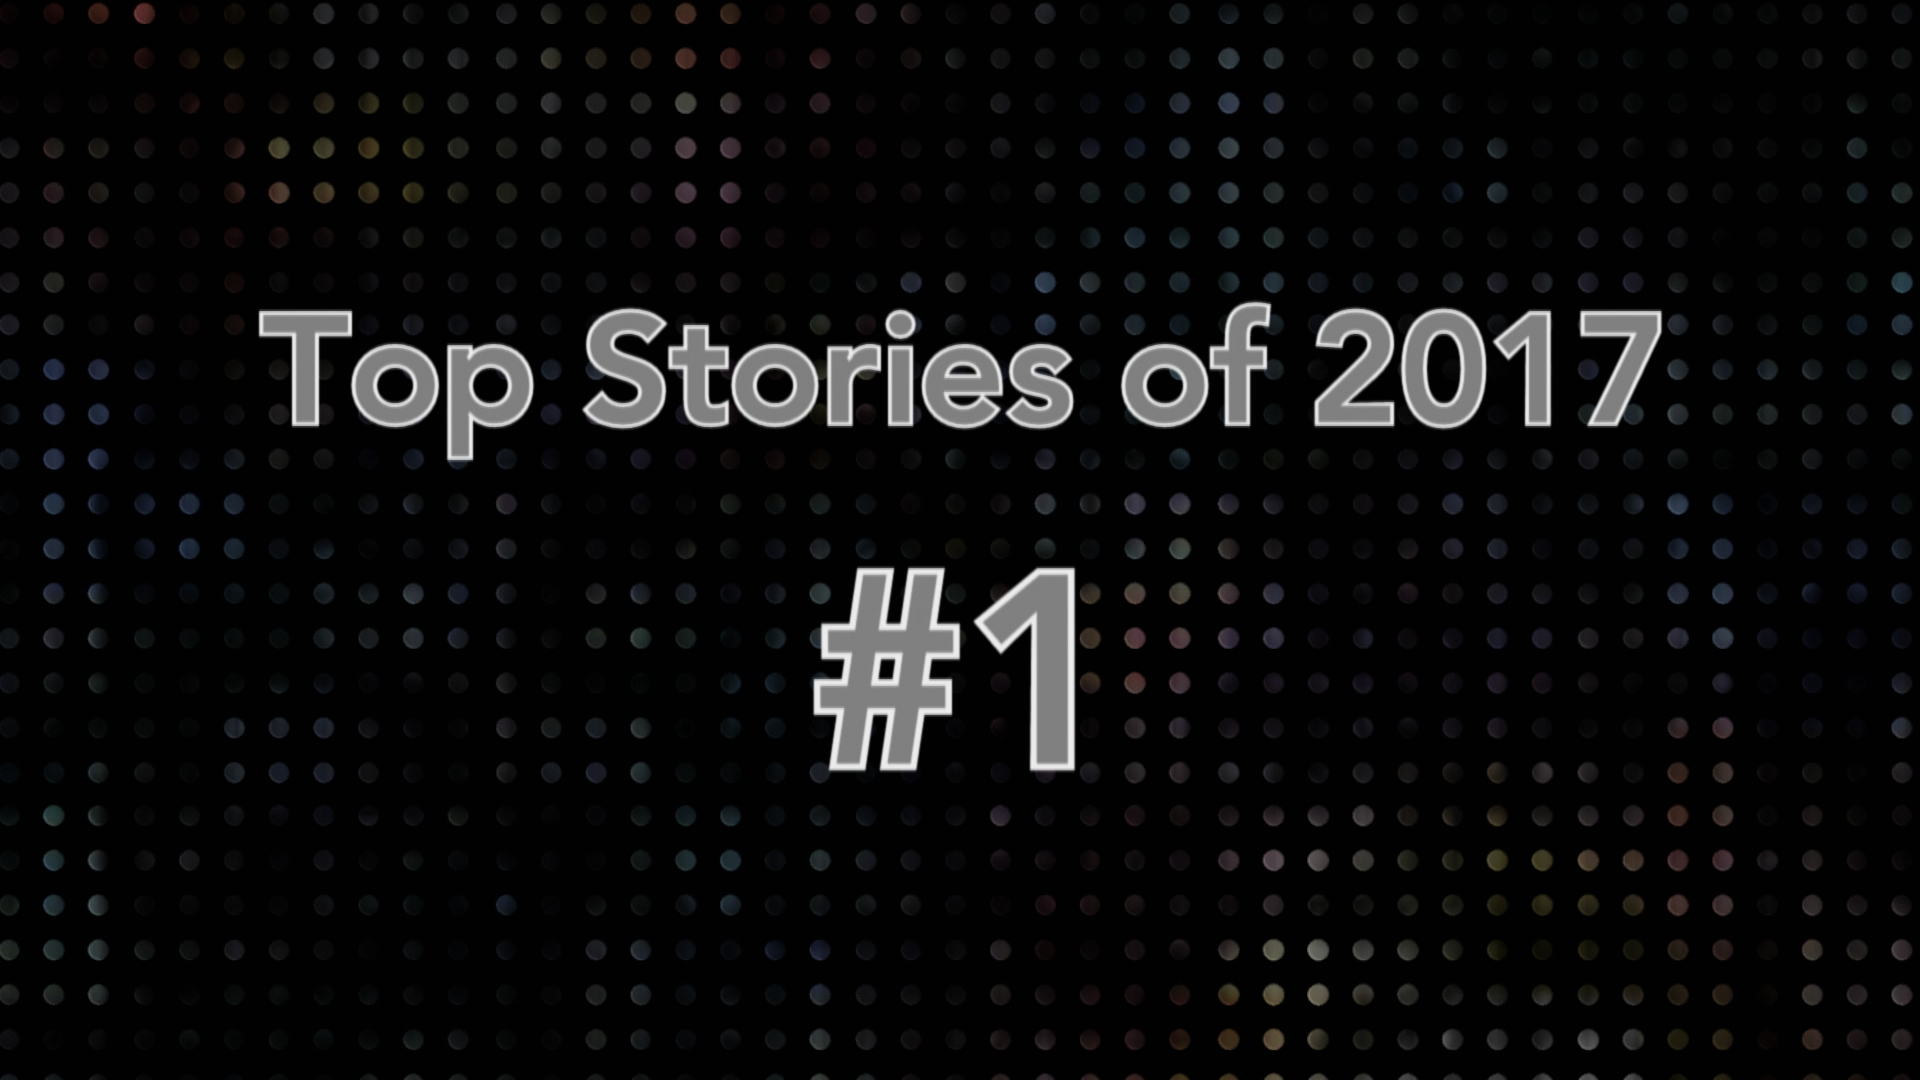 Top Stories of 2017 #1